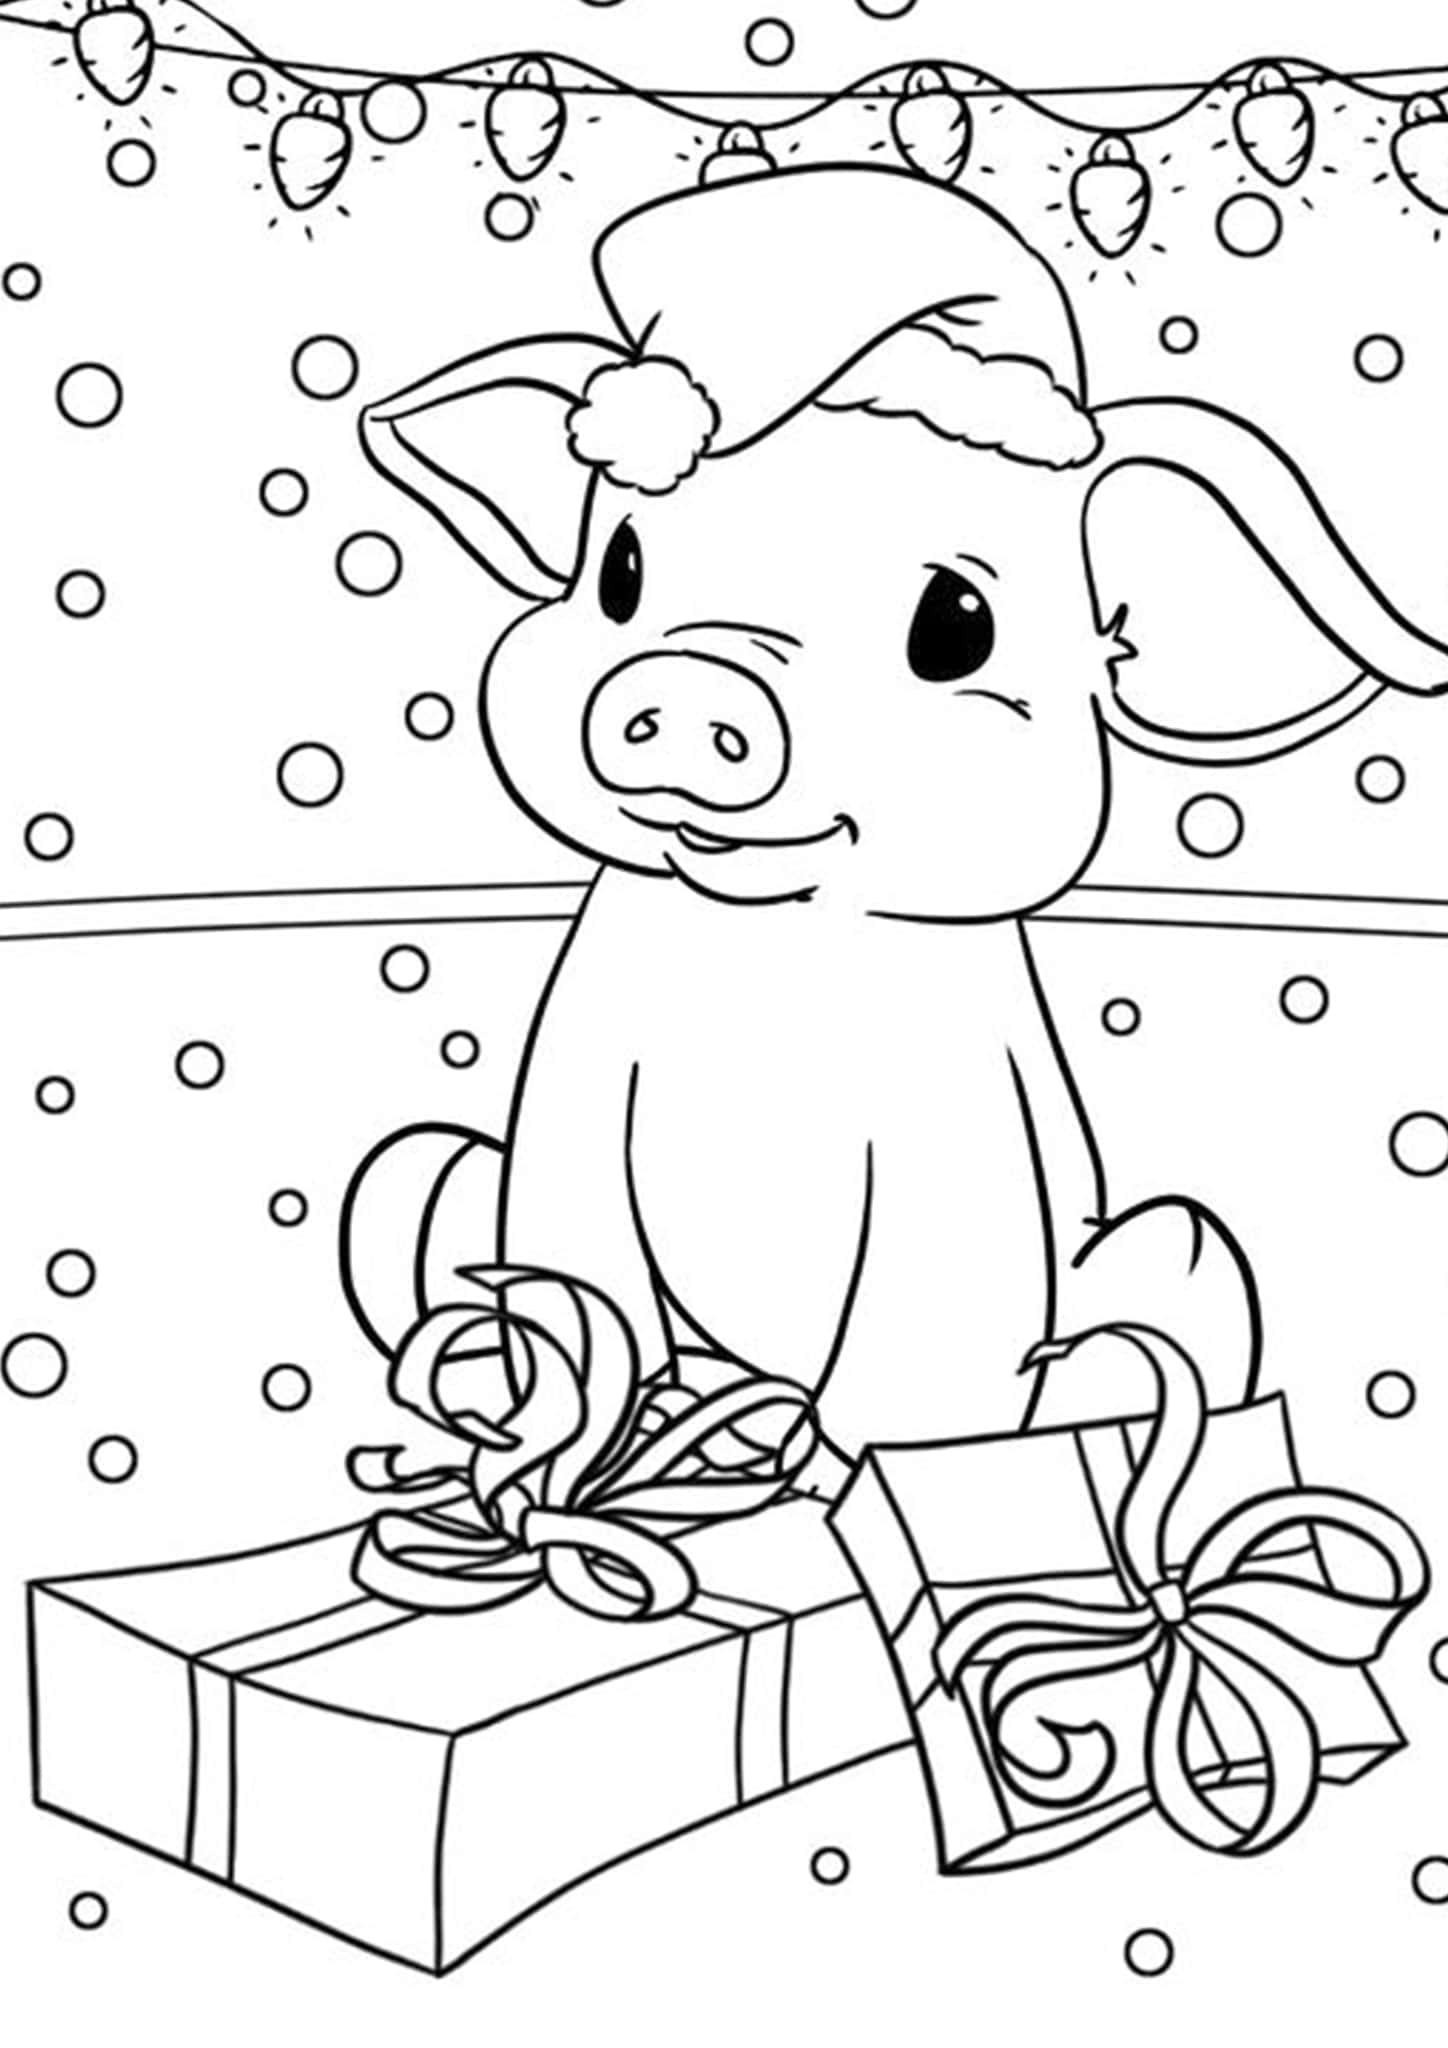 coloring pig for kids cute pig coloring page for kids free printable picture for coloring kids pig